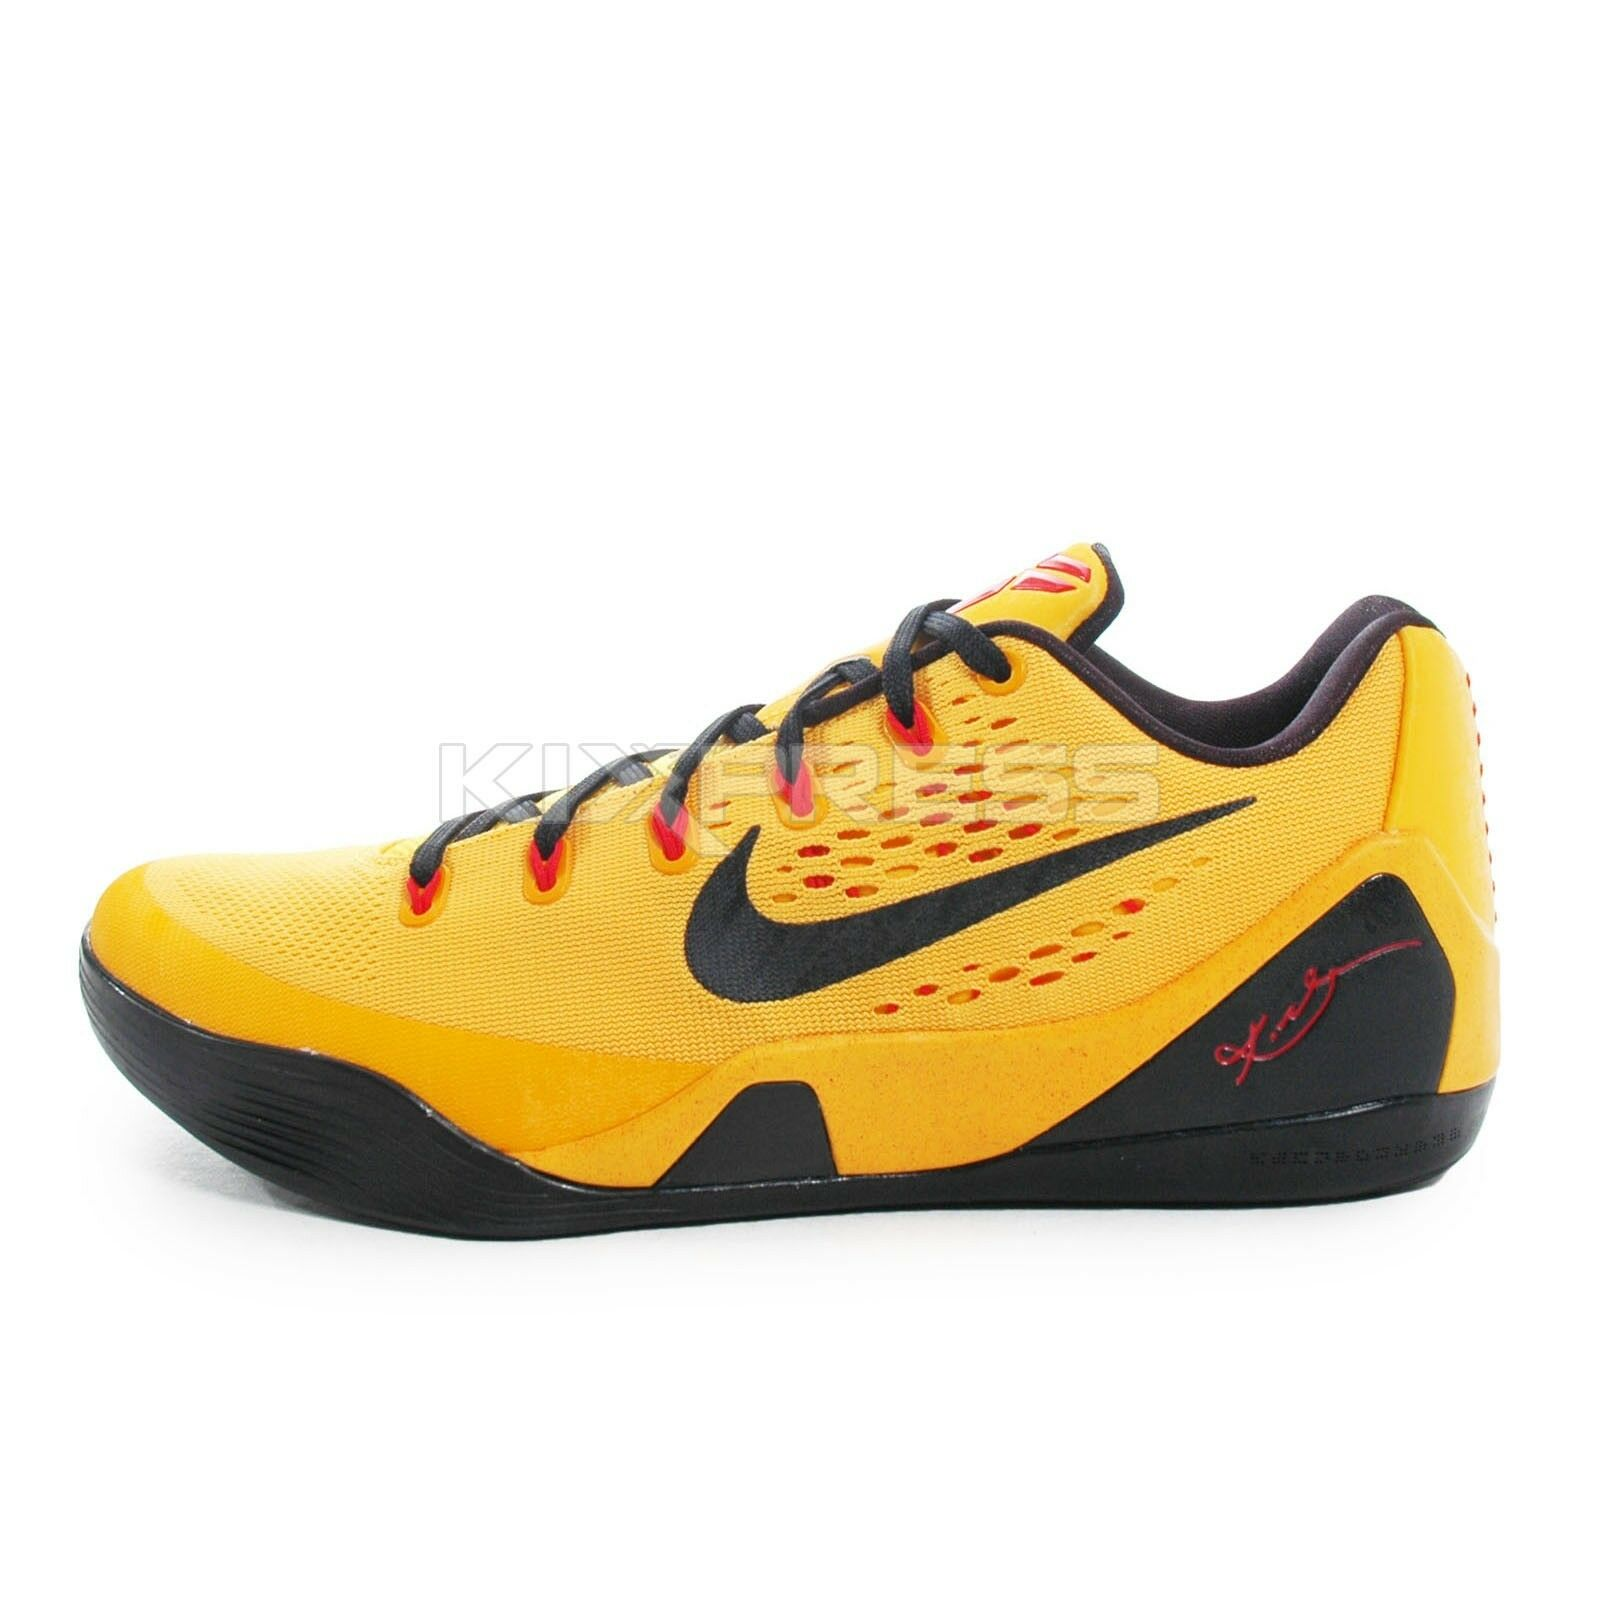 Nike Kobe IX EM  653972-700  Basketball Bruce LEE Gold Black-Crimson ... 2097460dff14